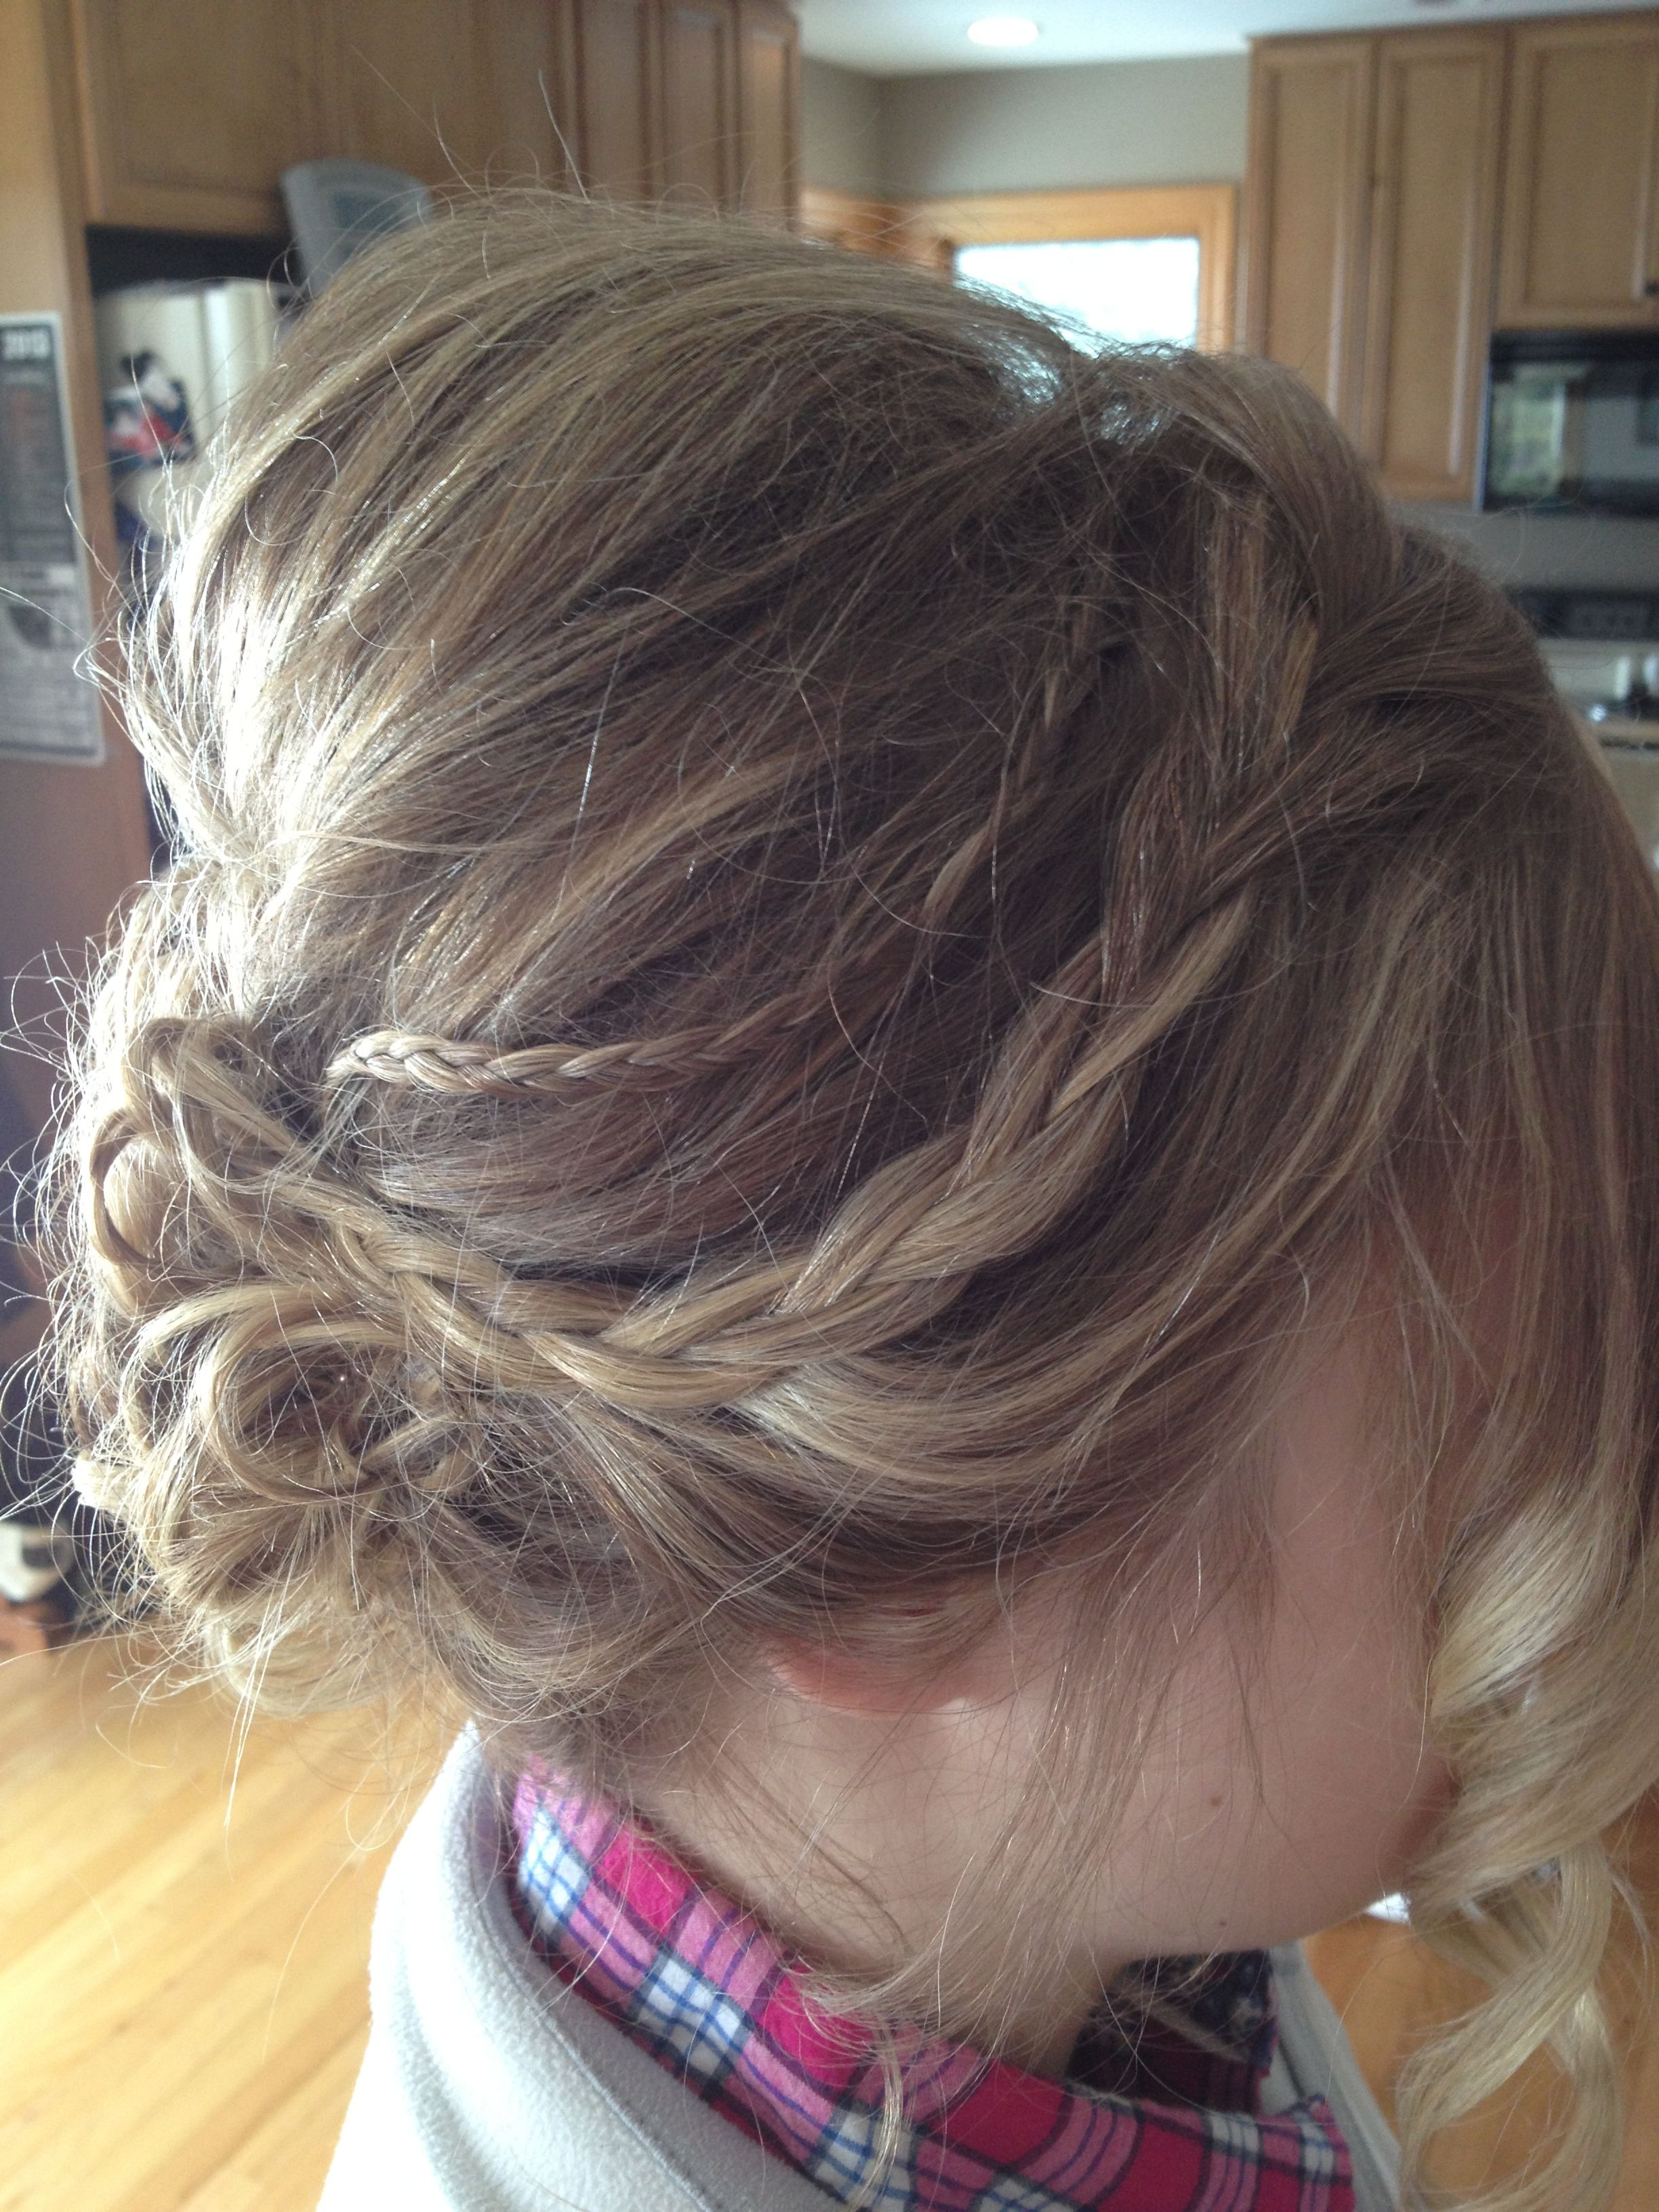 The side view of my previous prom hair updo pin